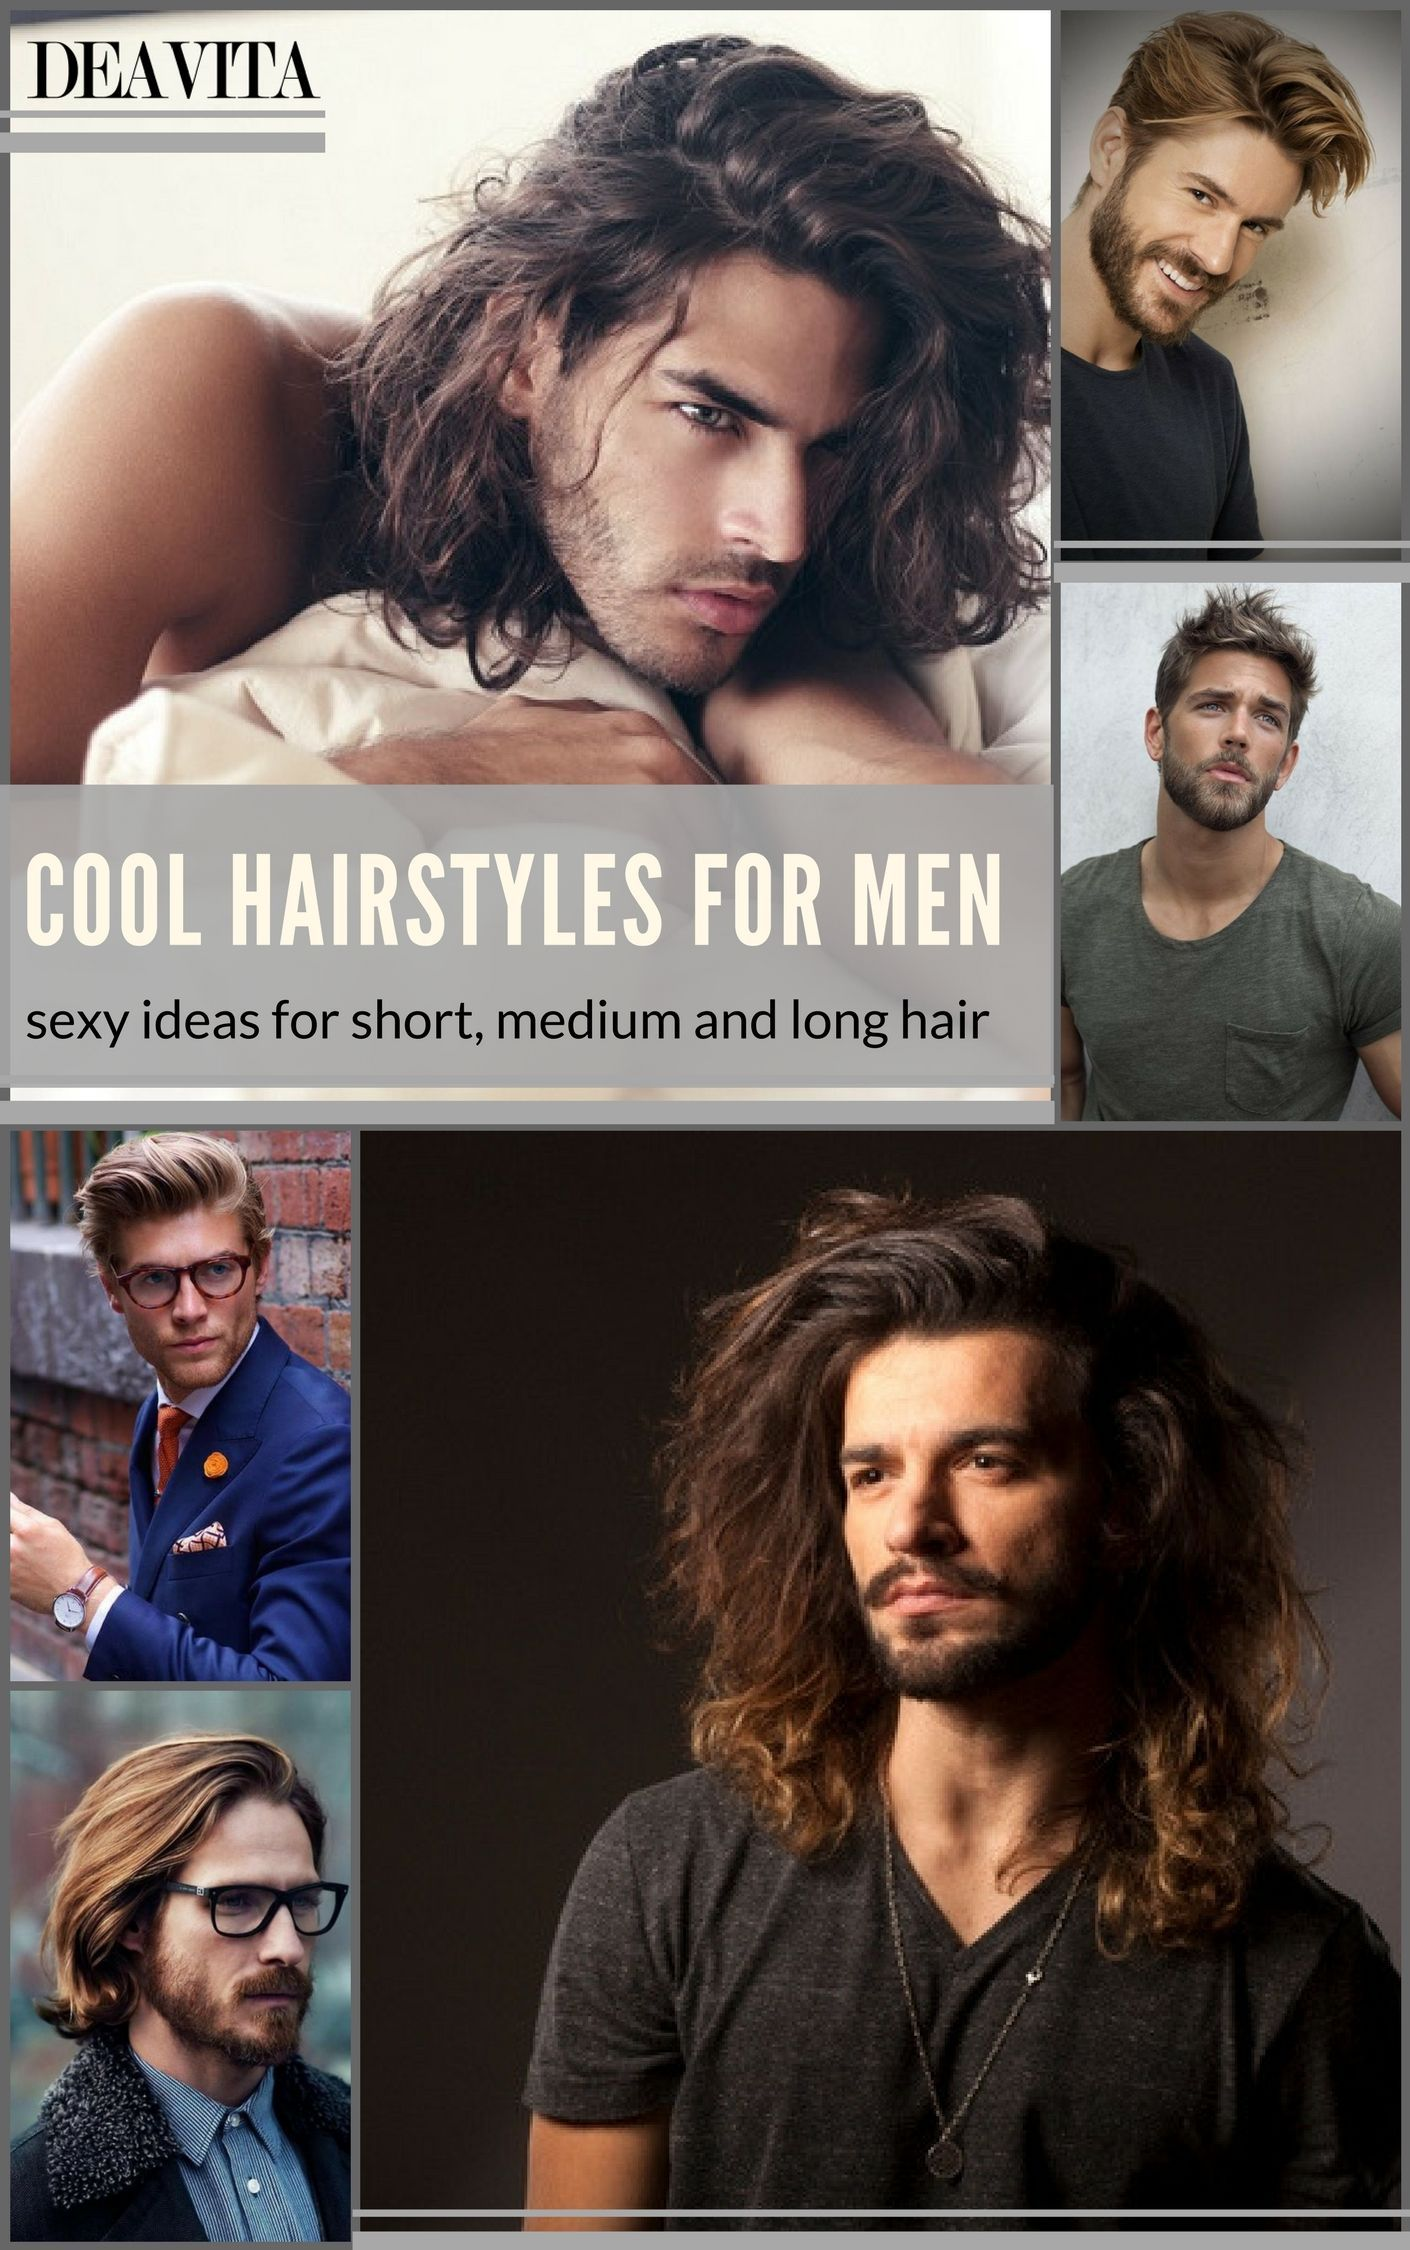 Parts in black men haircuts cool hairstyles for men include a variety of hair length and